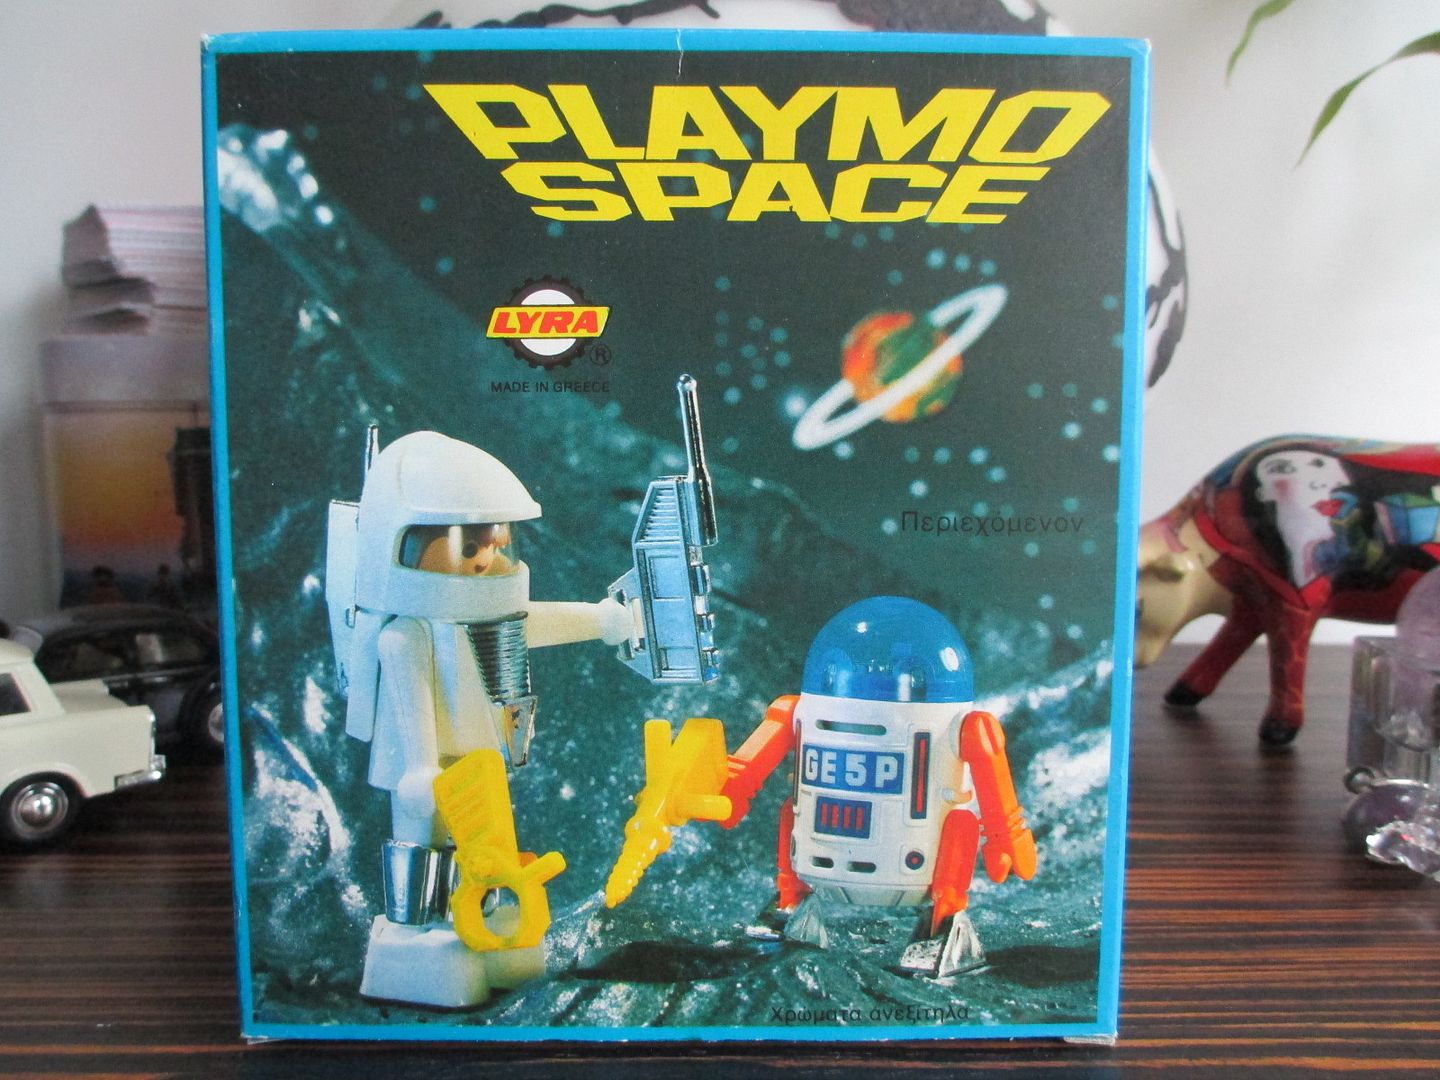 Playmospace : Not the droid your looking for.... IMG_0927_zps80876d6d